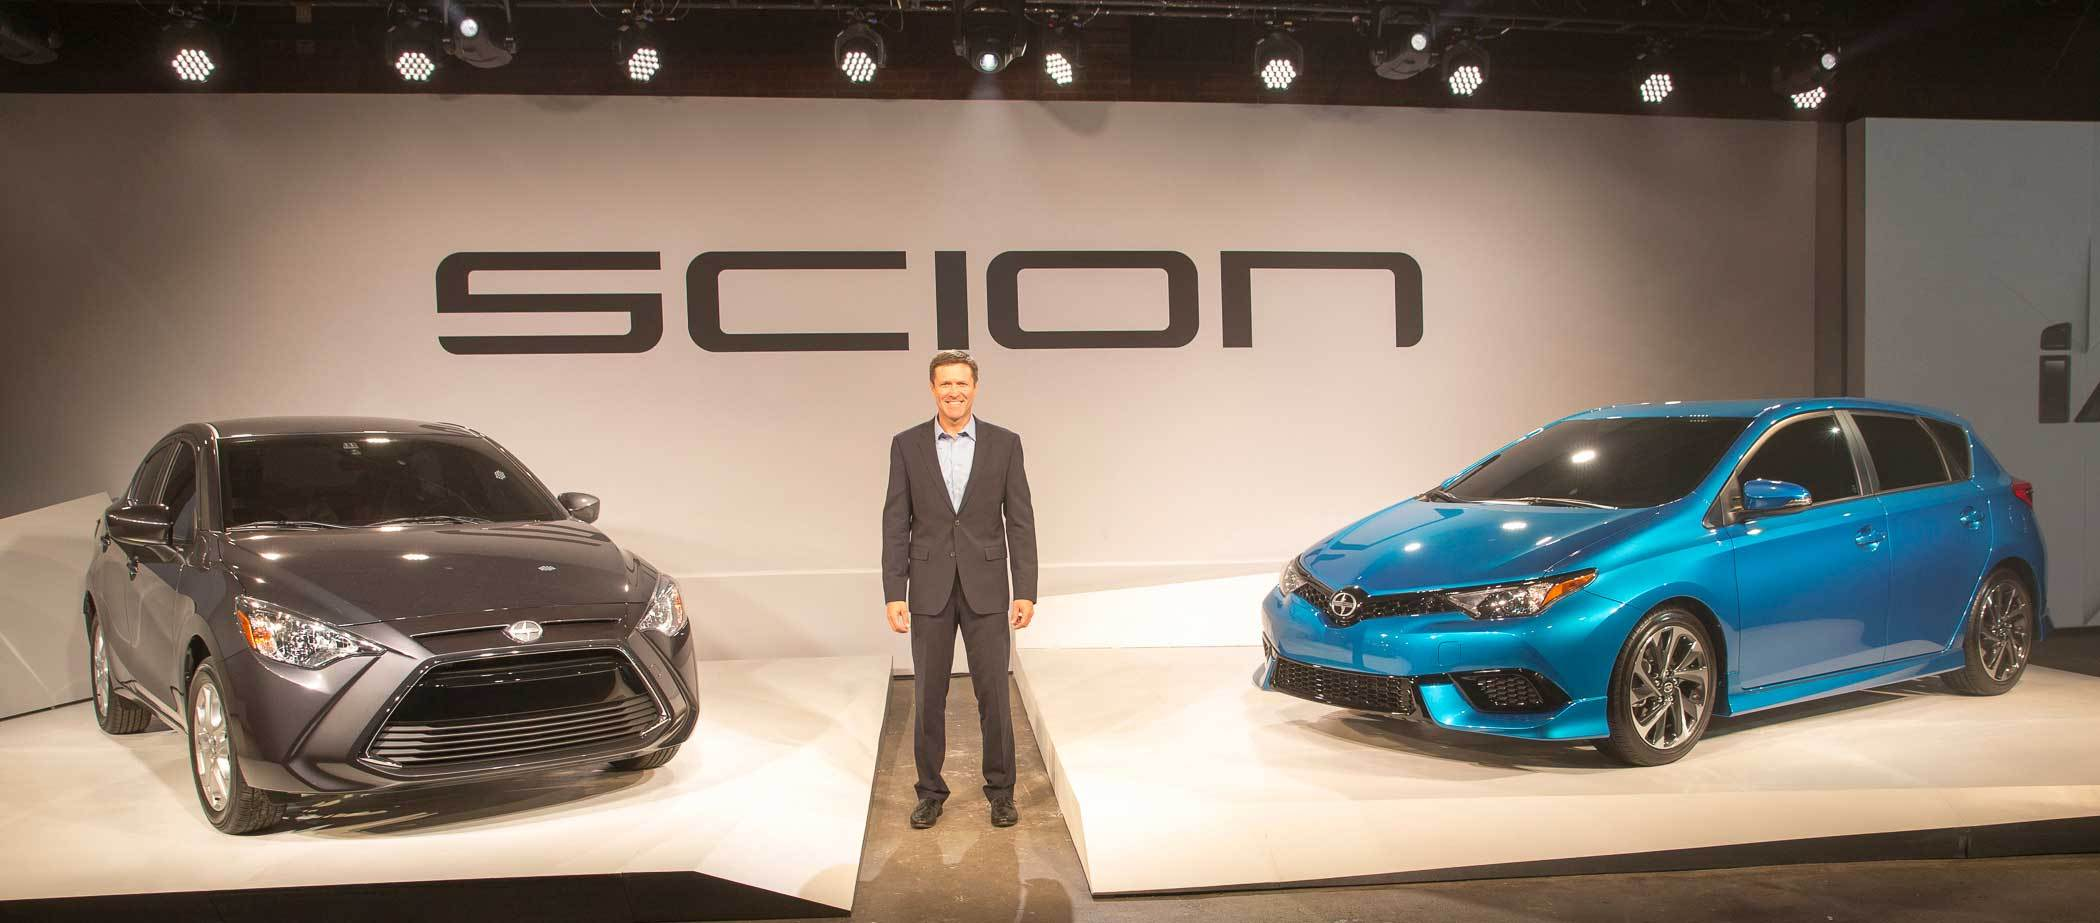 toyota the maker of the scion brand using what kind of brand strategy with scion products Scion scion type marque of toyota key factors of toyota's strategy canvas were toyota canada inc announced that the scion brand will be available in.